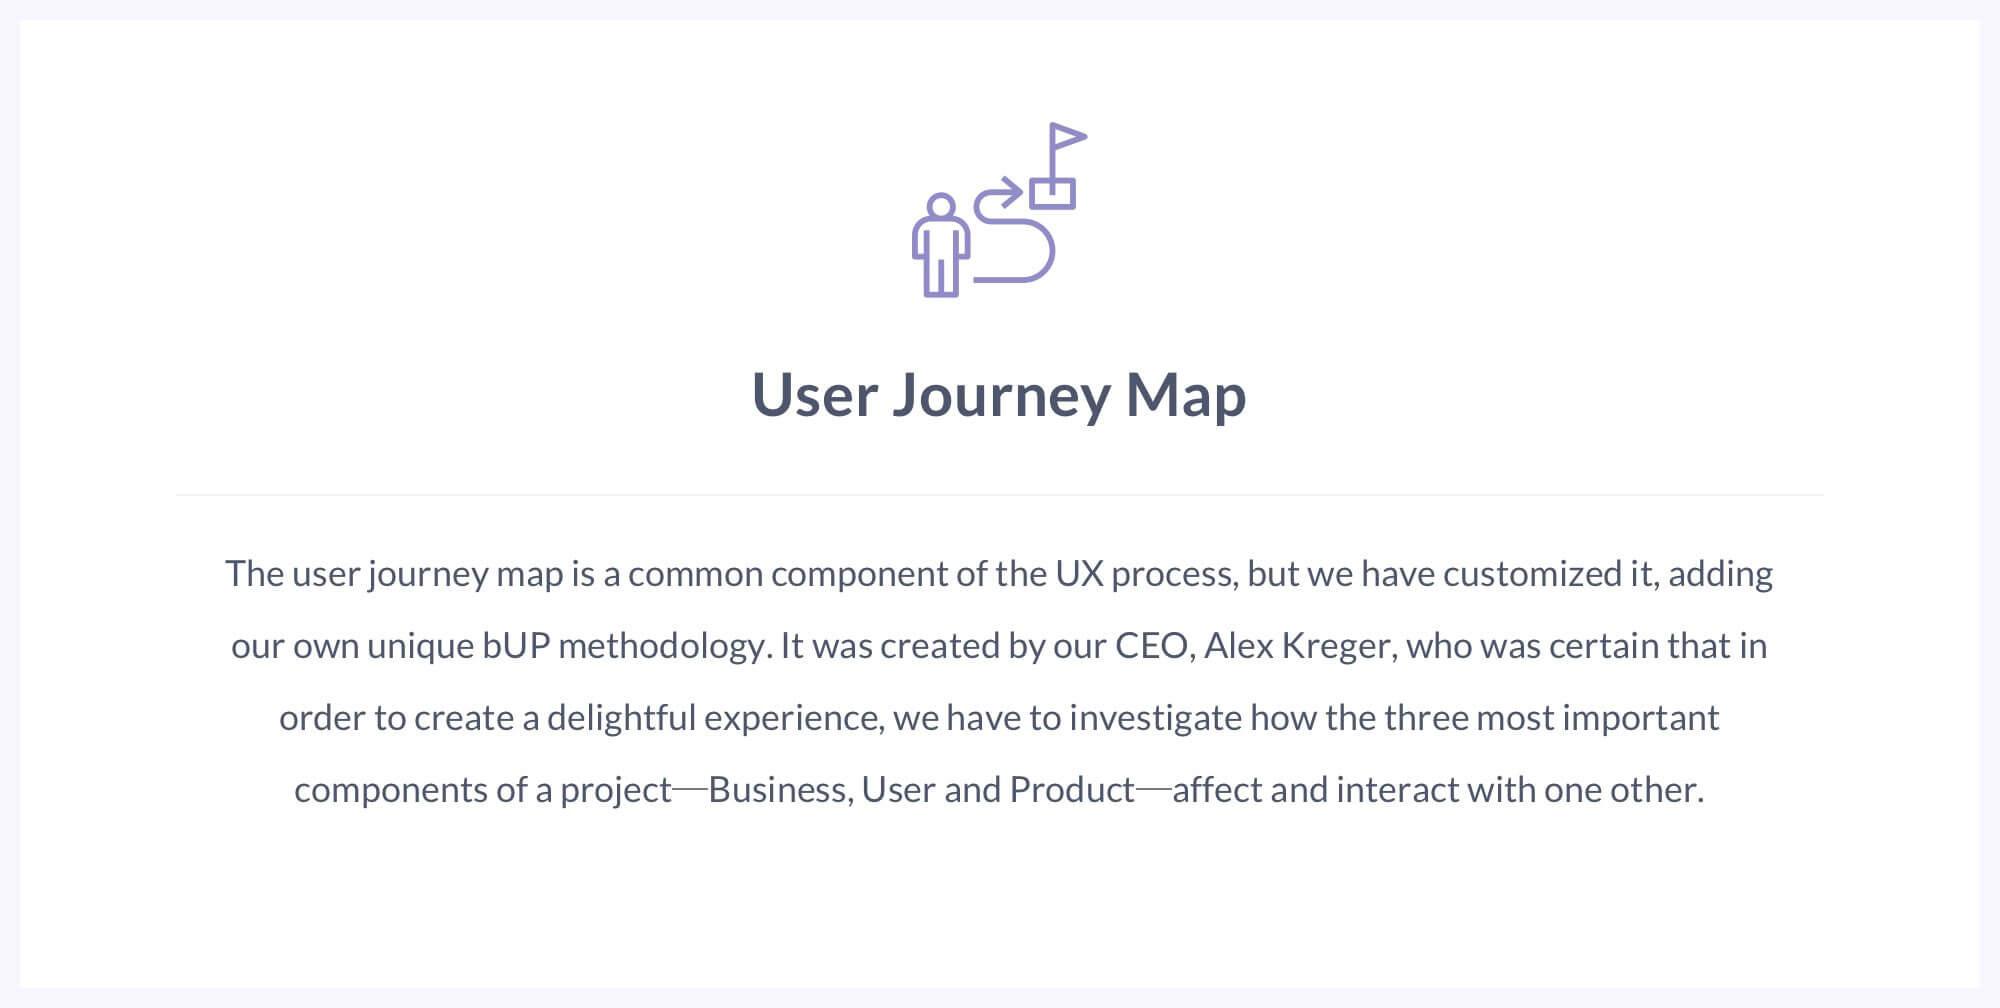 ux-design-core-banking-case-study-user-journey-map